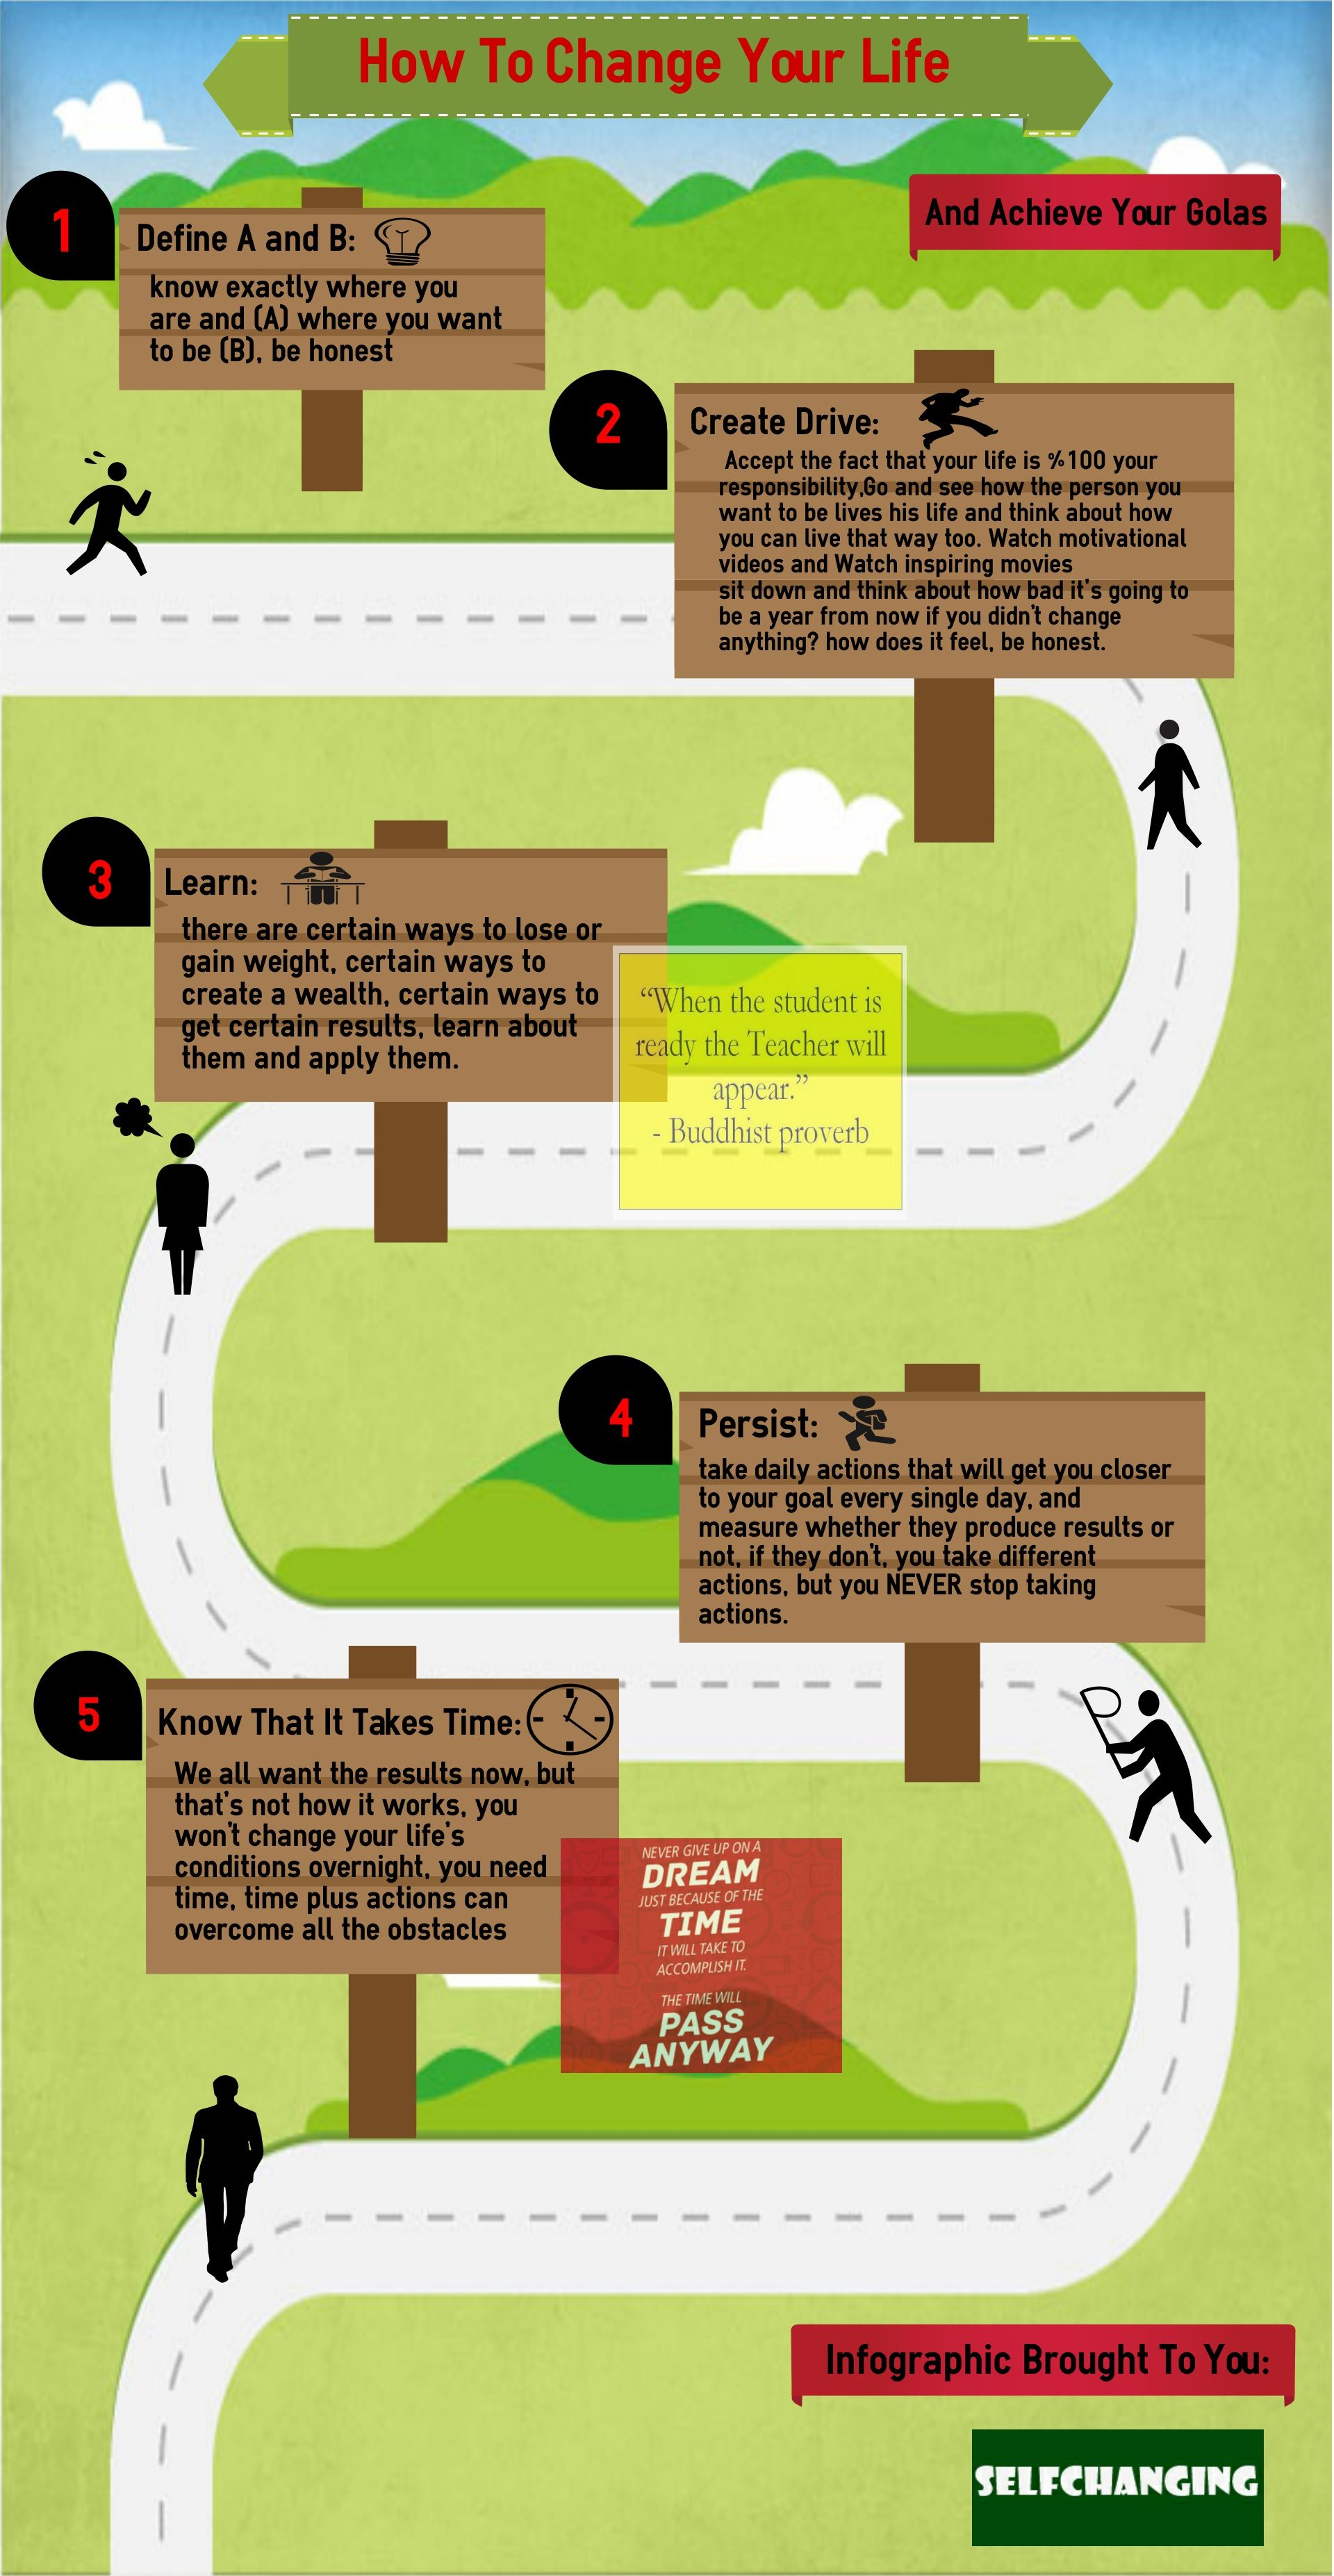 5 Steps To Change Your Life Infographic